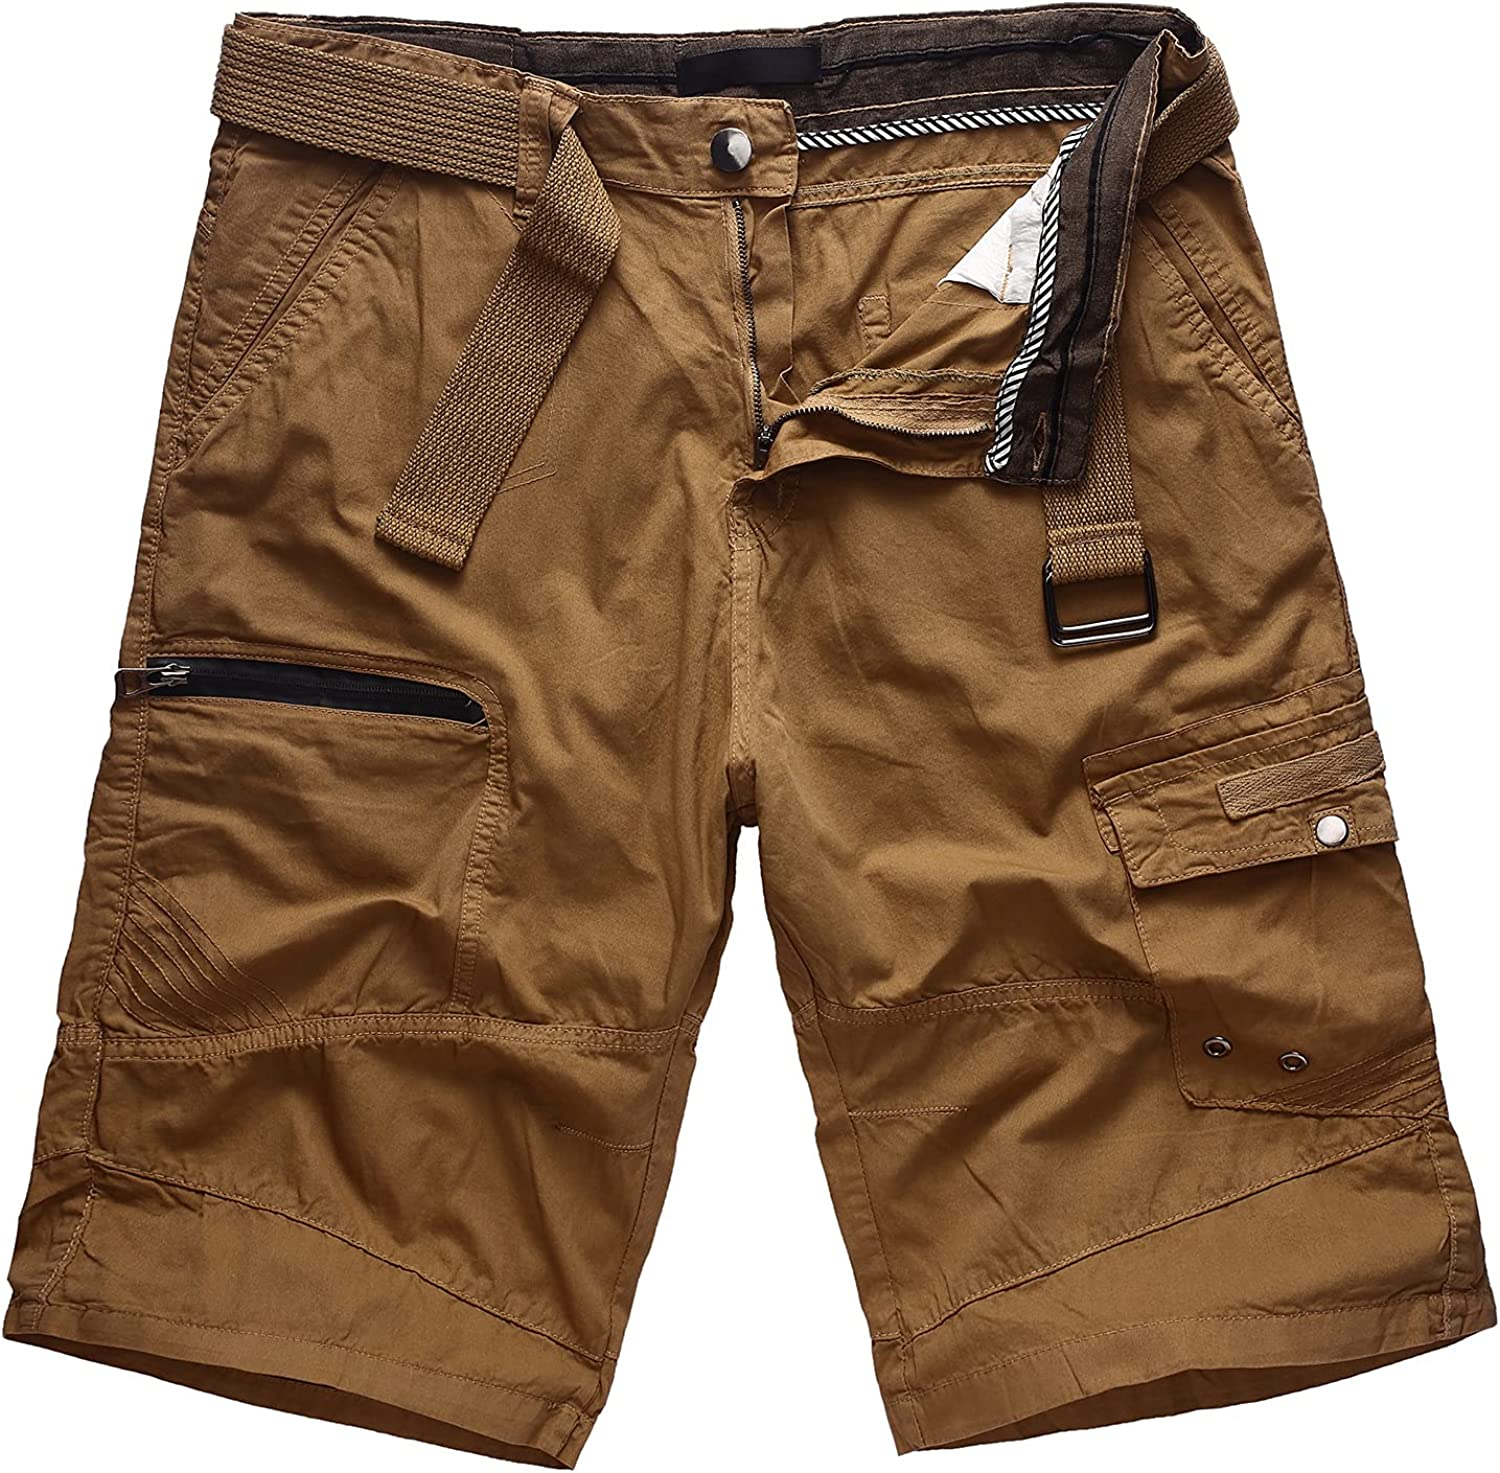 WearLink Men's Casual Cargo Shorts Relaxed Fit Multi Pockets Summer Work Tactical Shorts